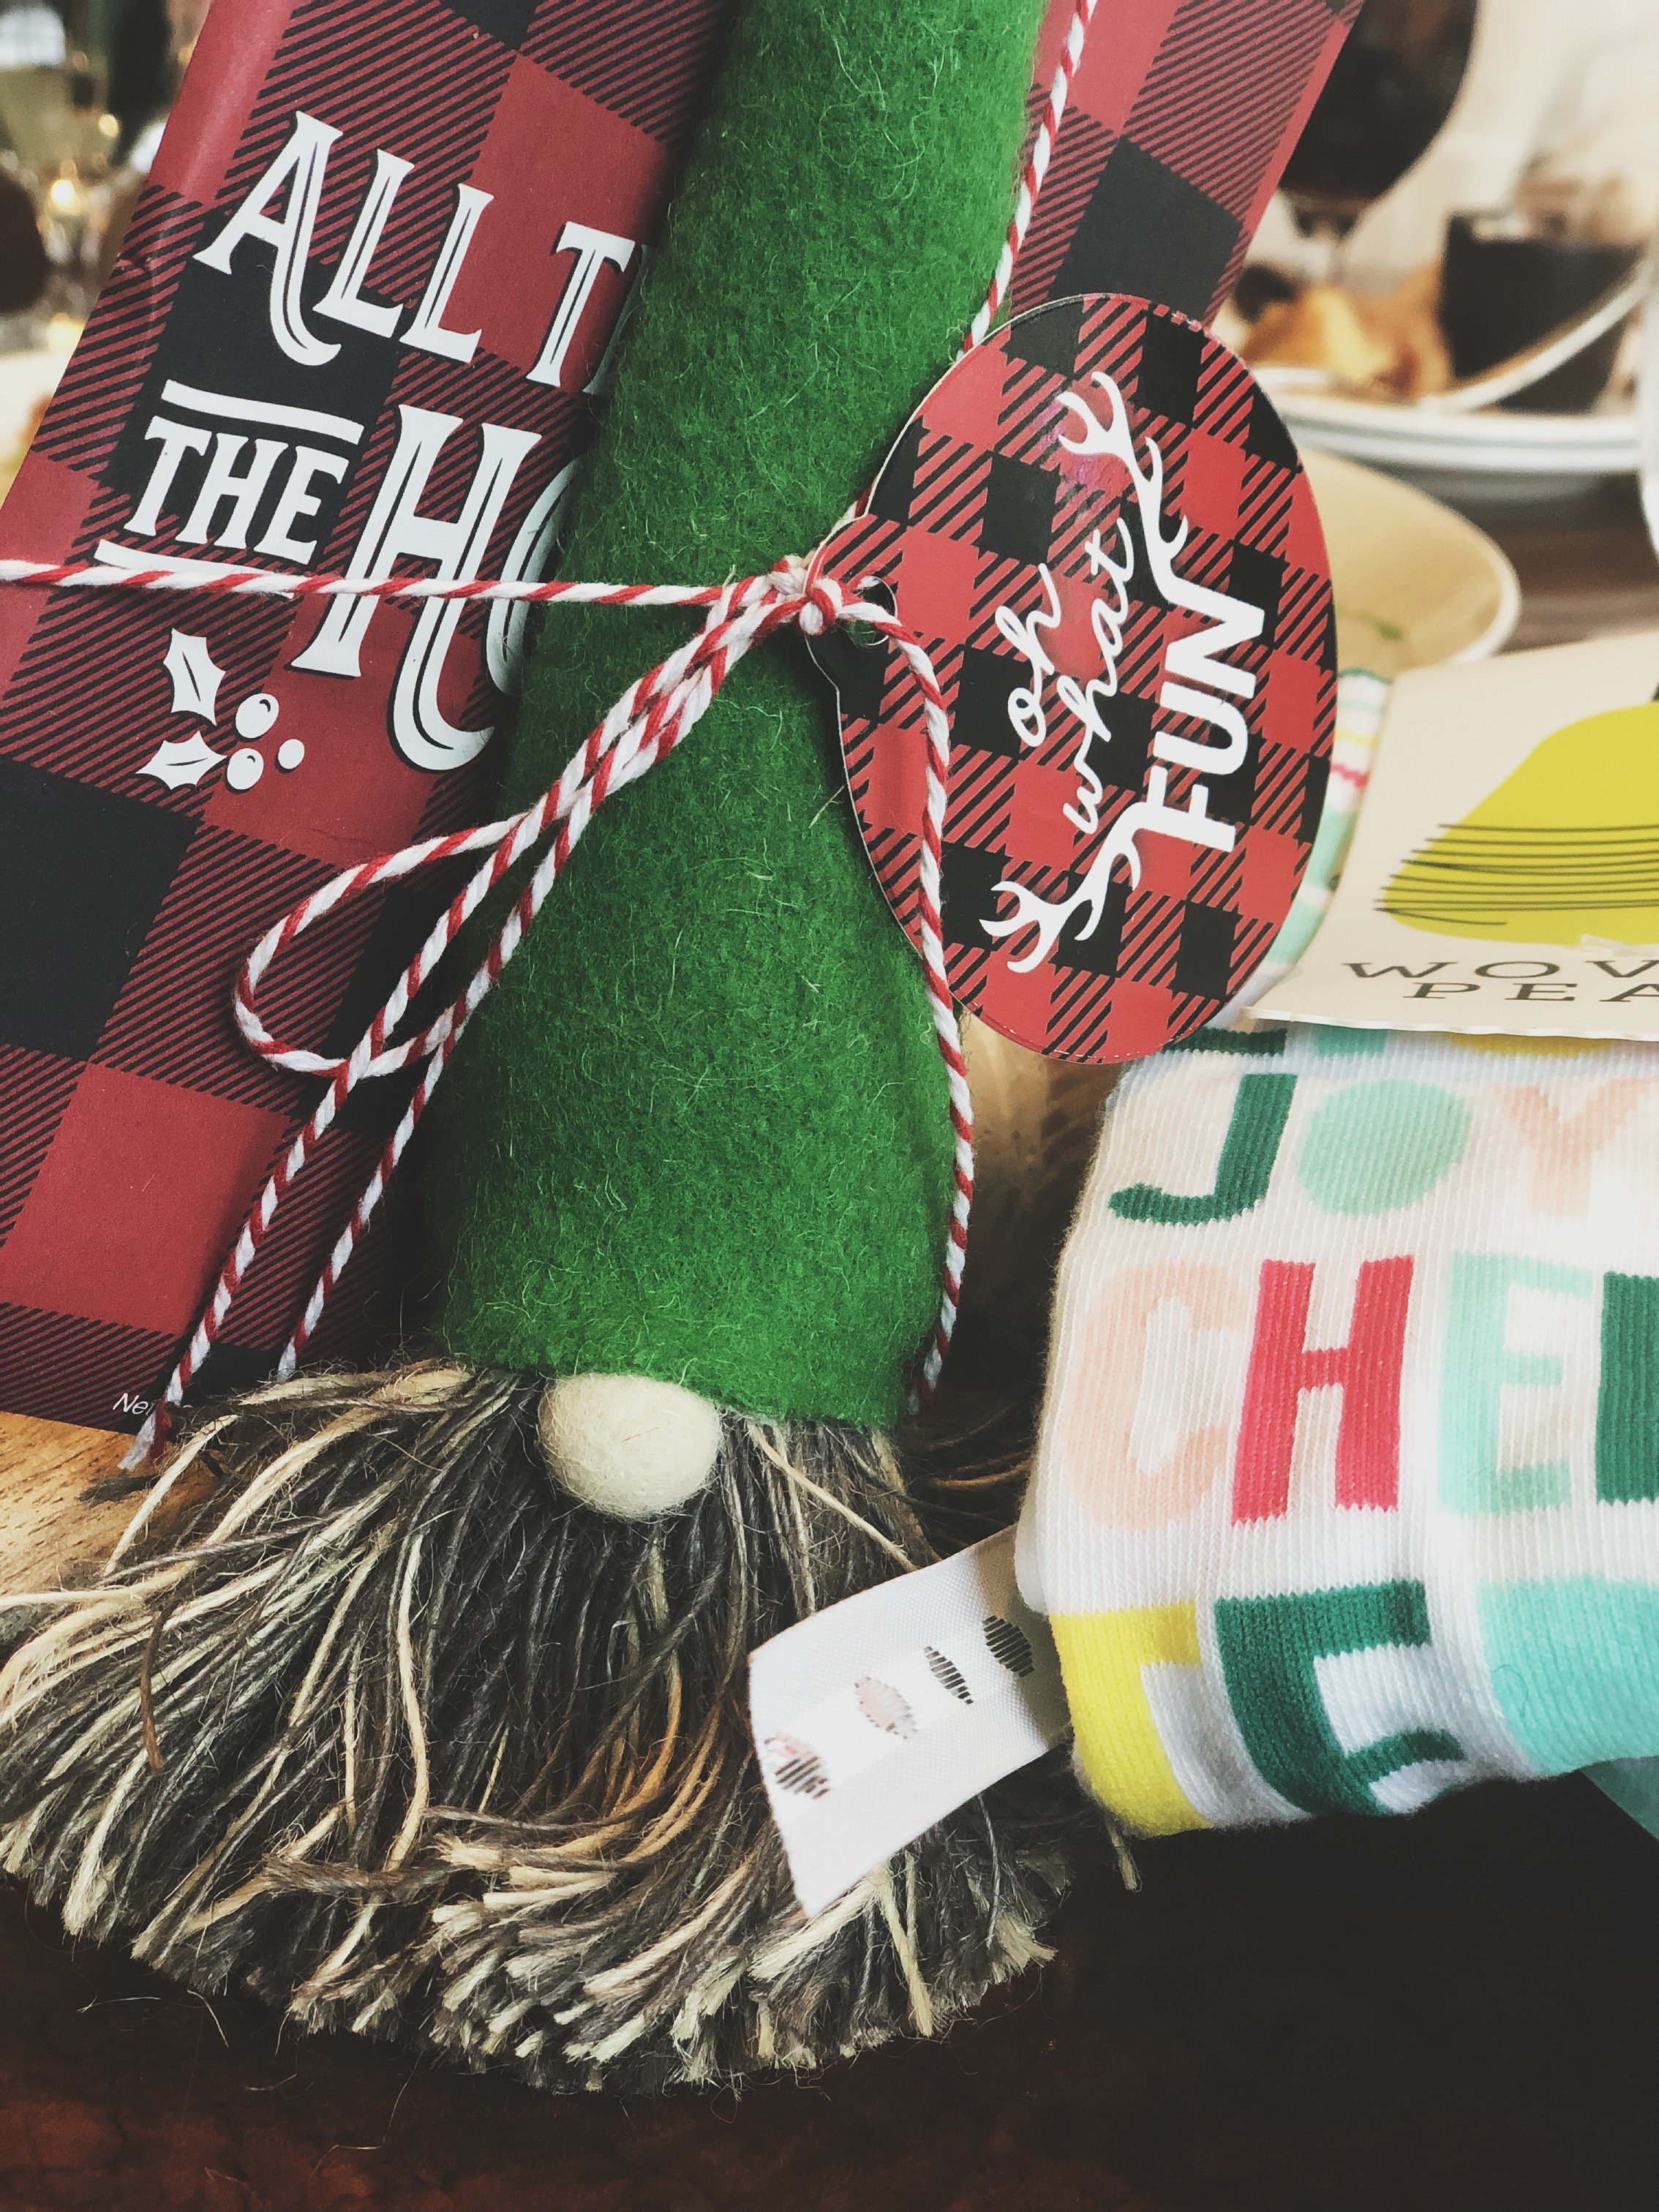 Cutest gifts! - I got spoiled.